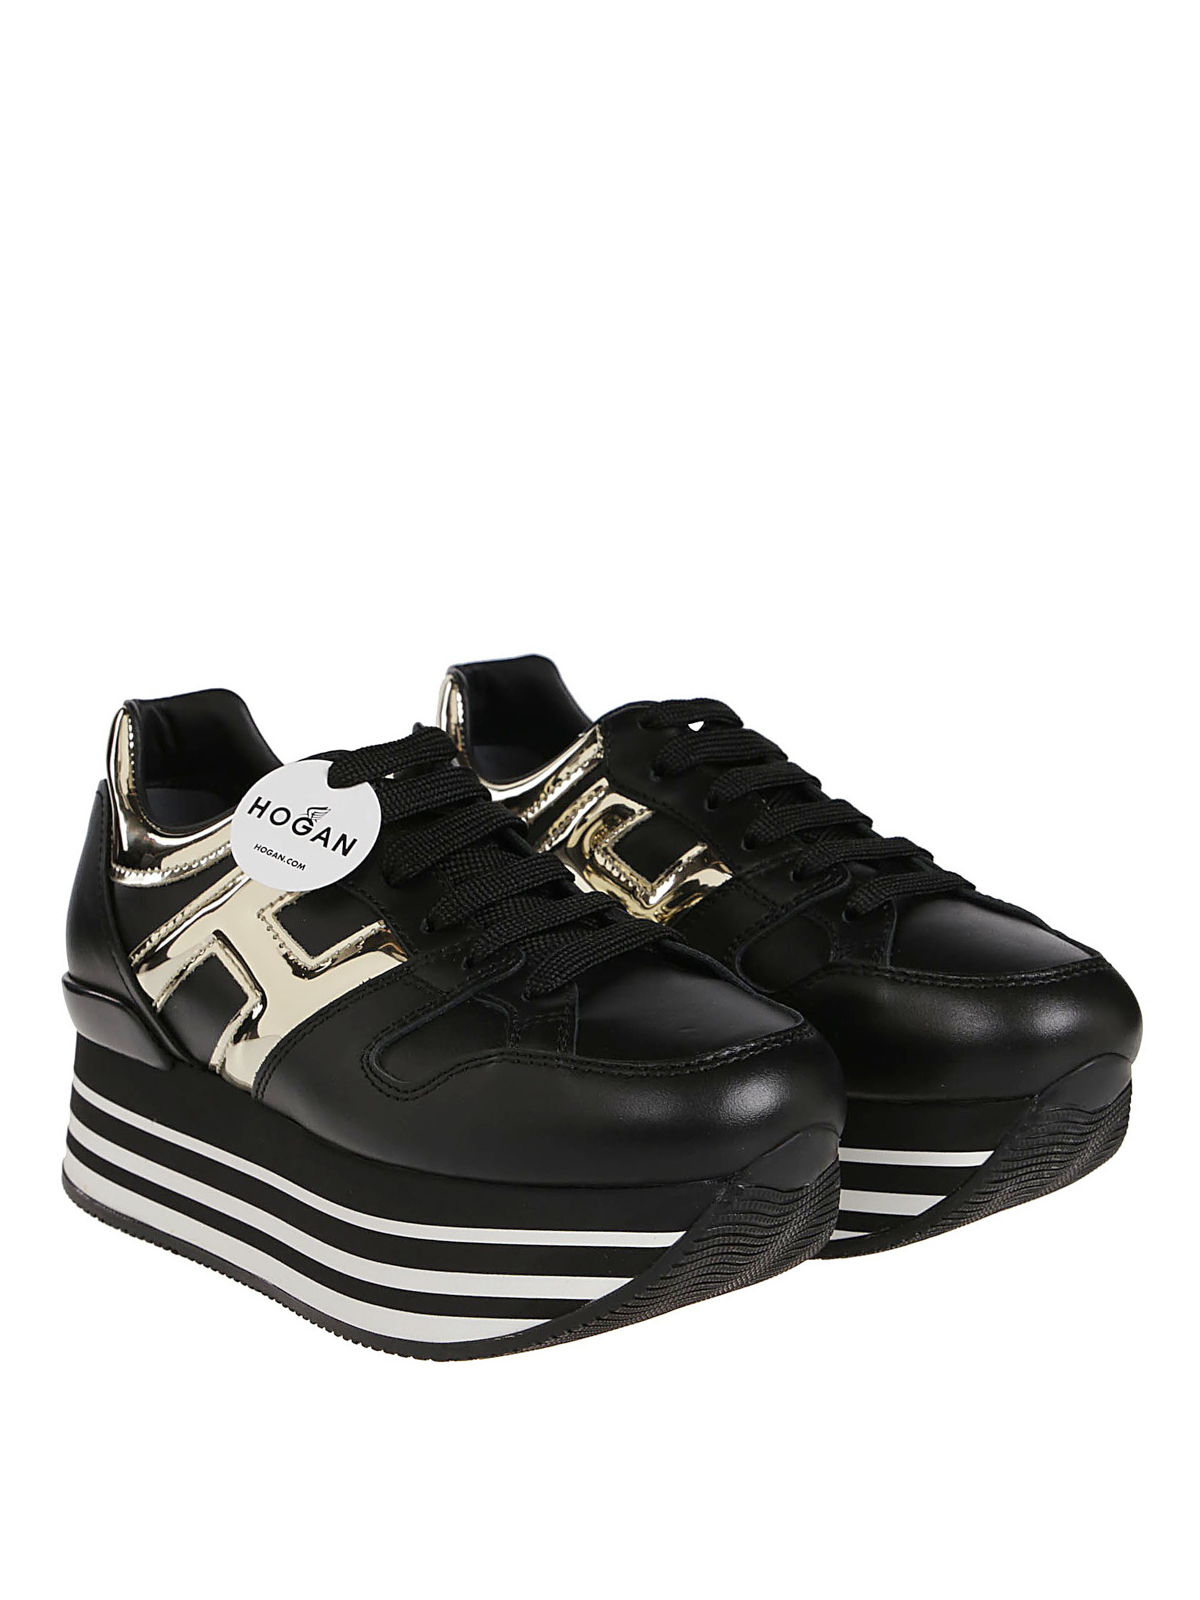 Trainers Hogan - Maxi H222 black and gold sneakers ...